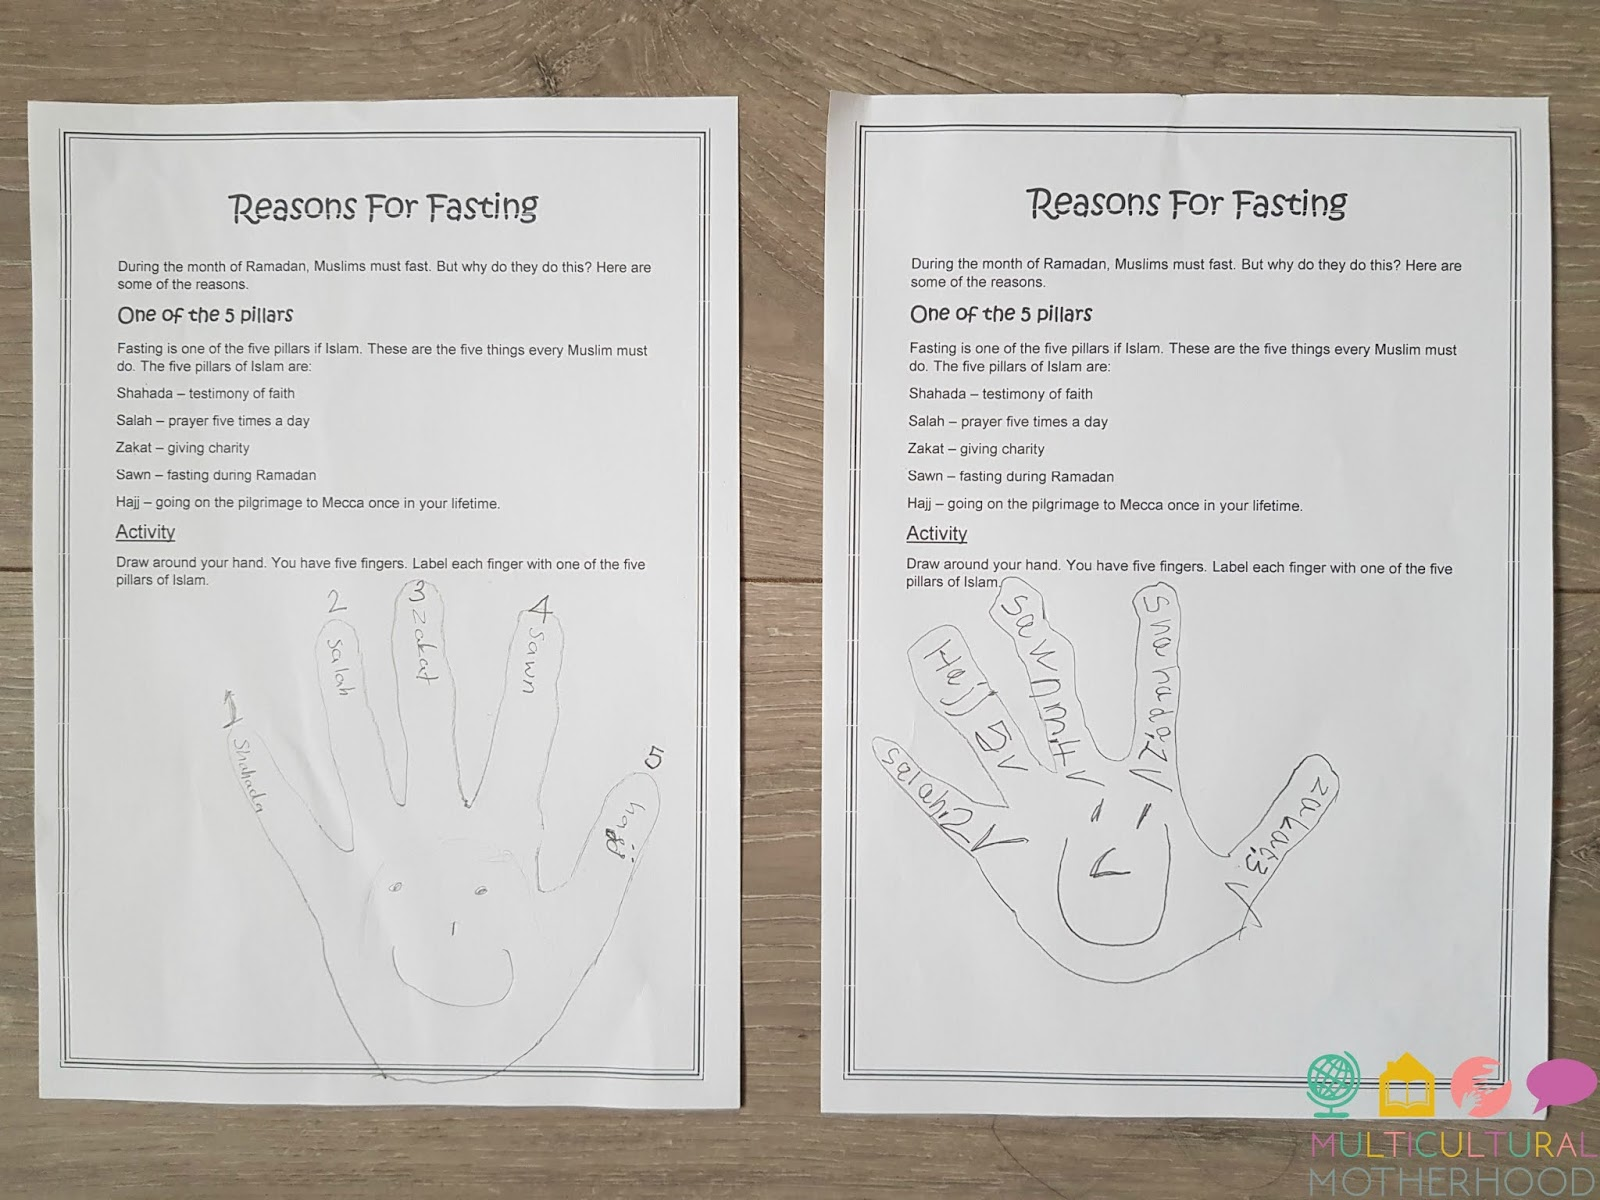 hight resolution of Reasons For Fasting in Ramadan - Activities For Kids + Free Printables!    Multicultural Motherhood